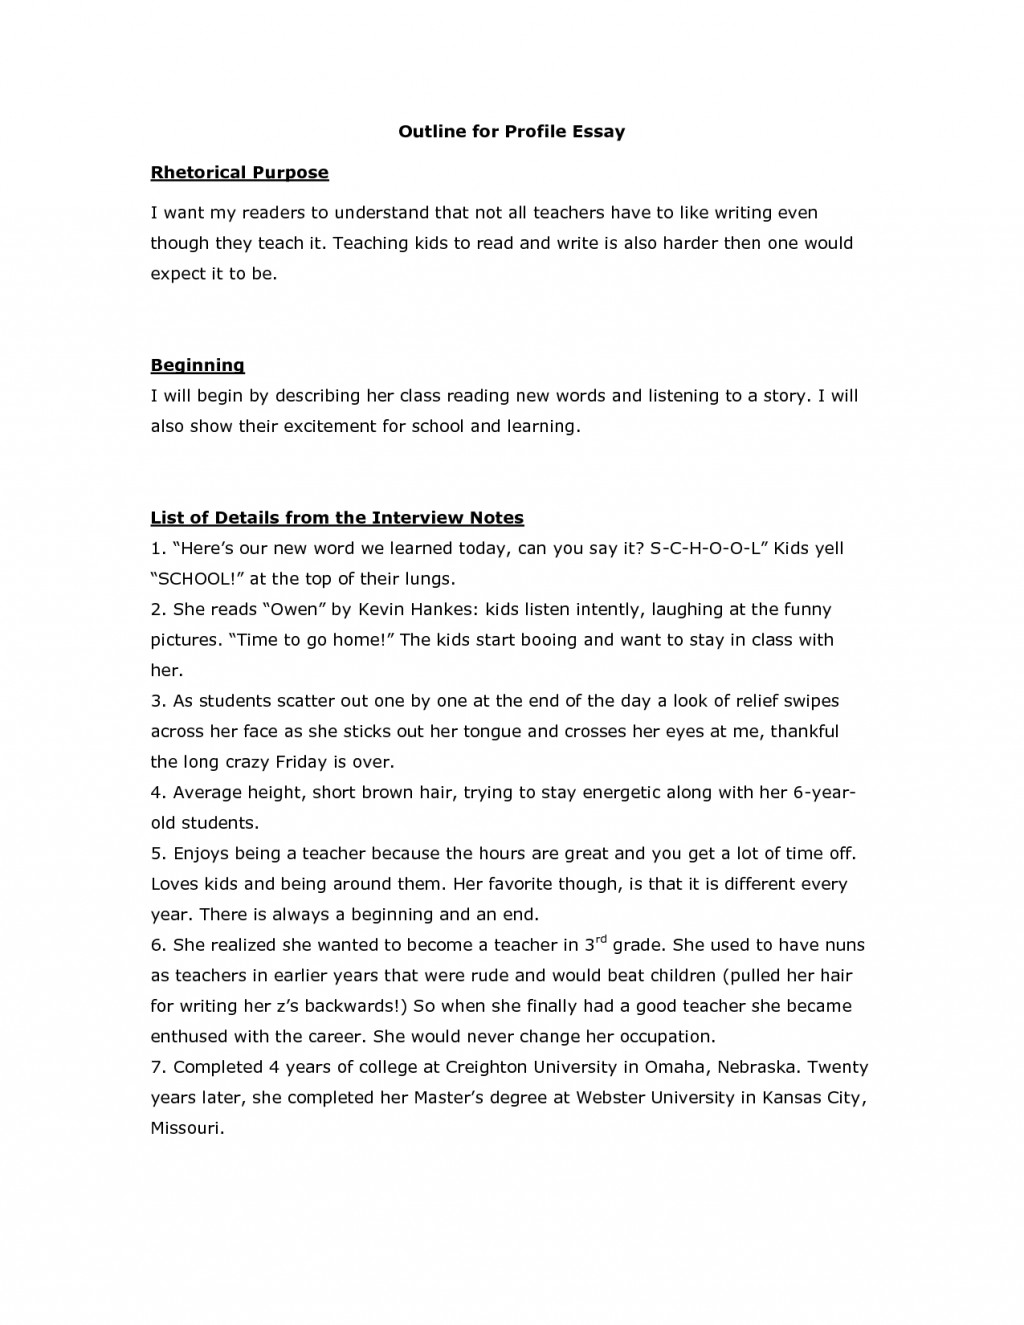 009 Essay Example Profile Outline 477731 Home Wonderful Definition Extended Large